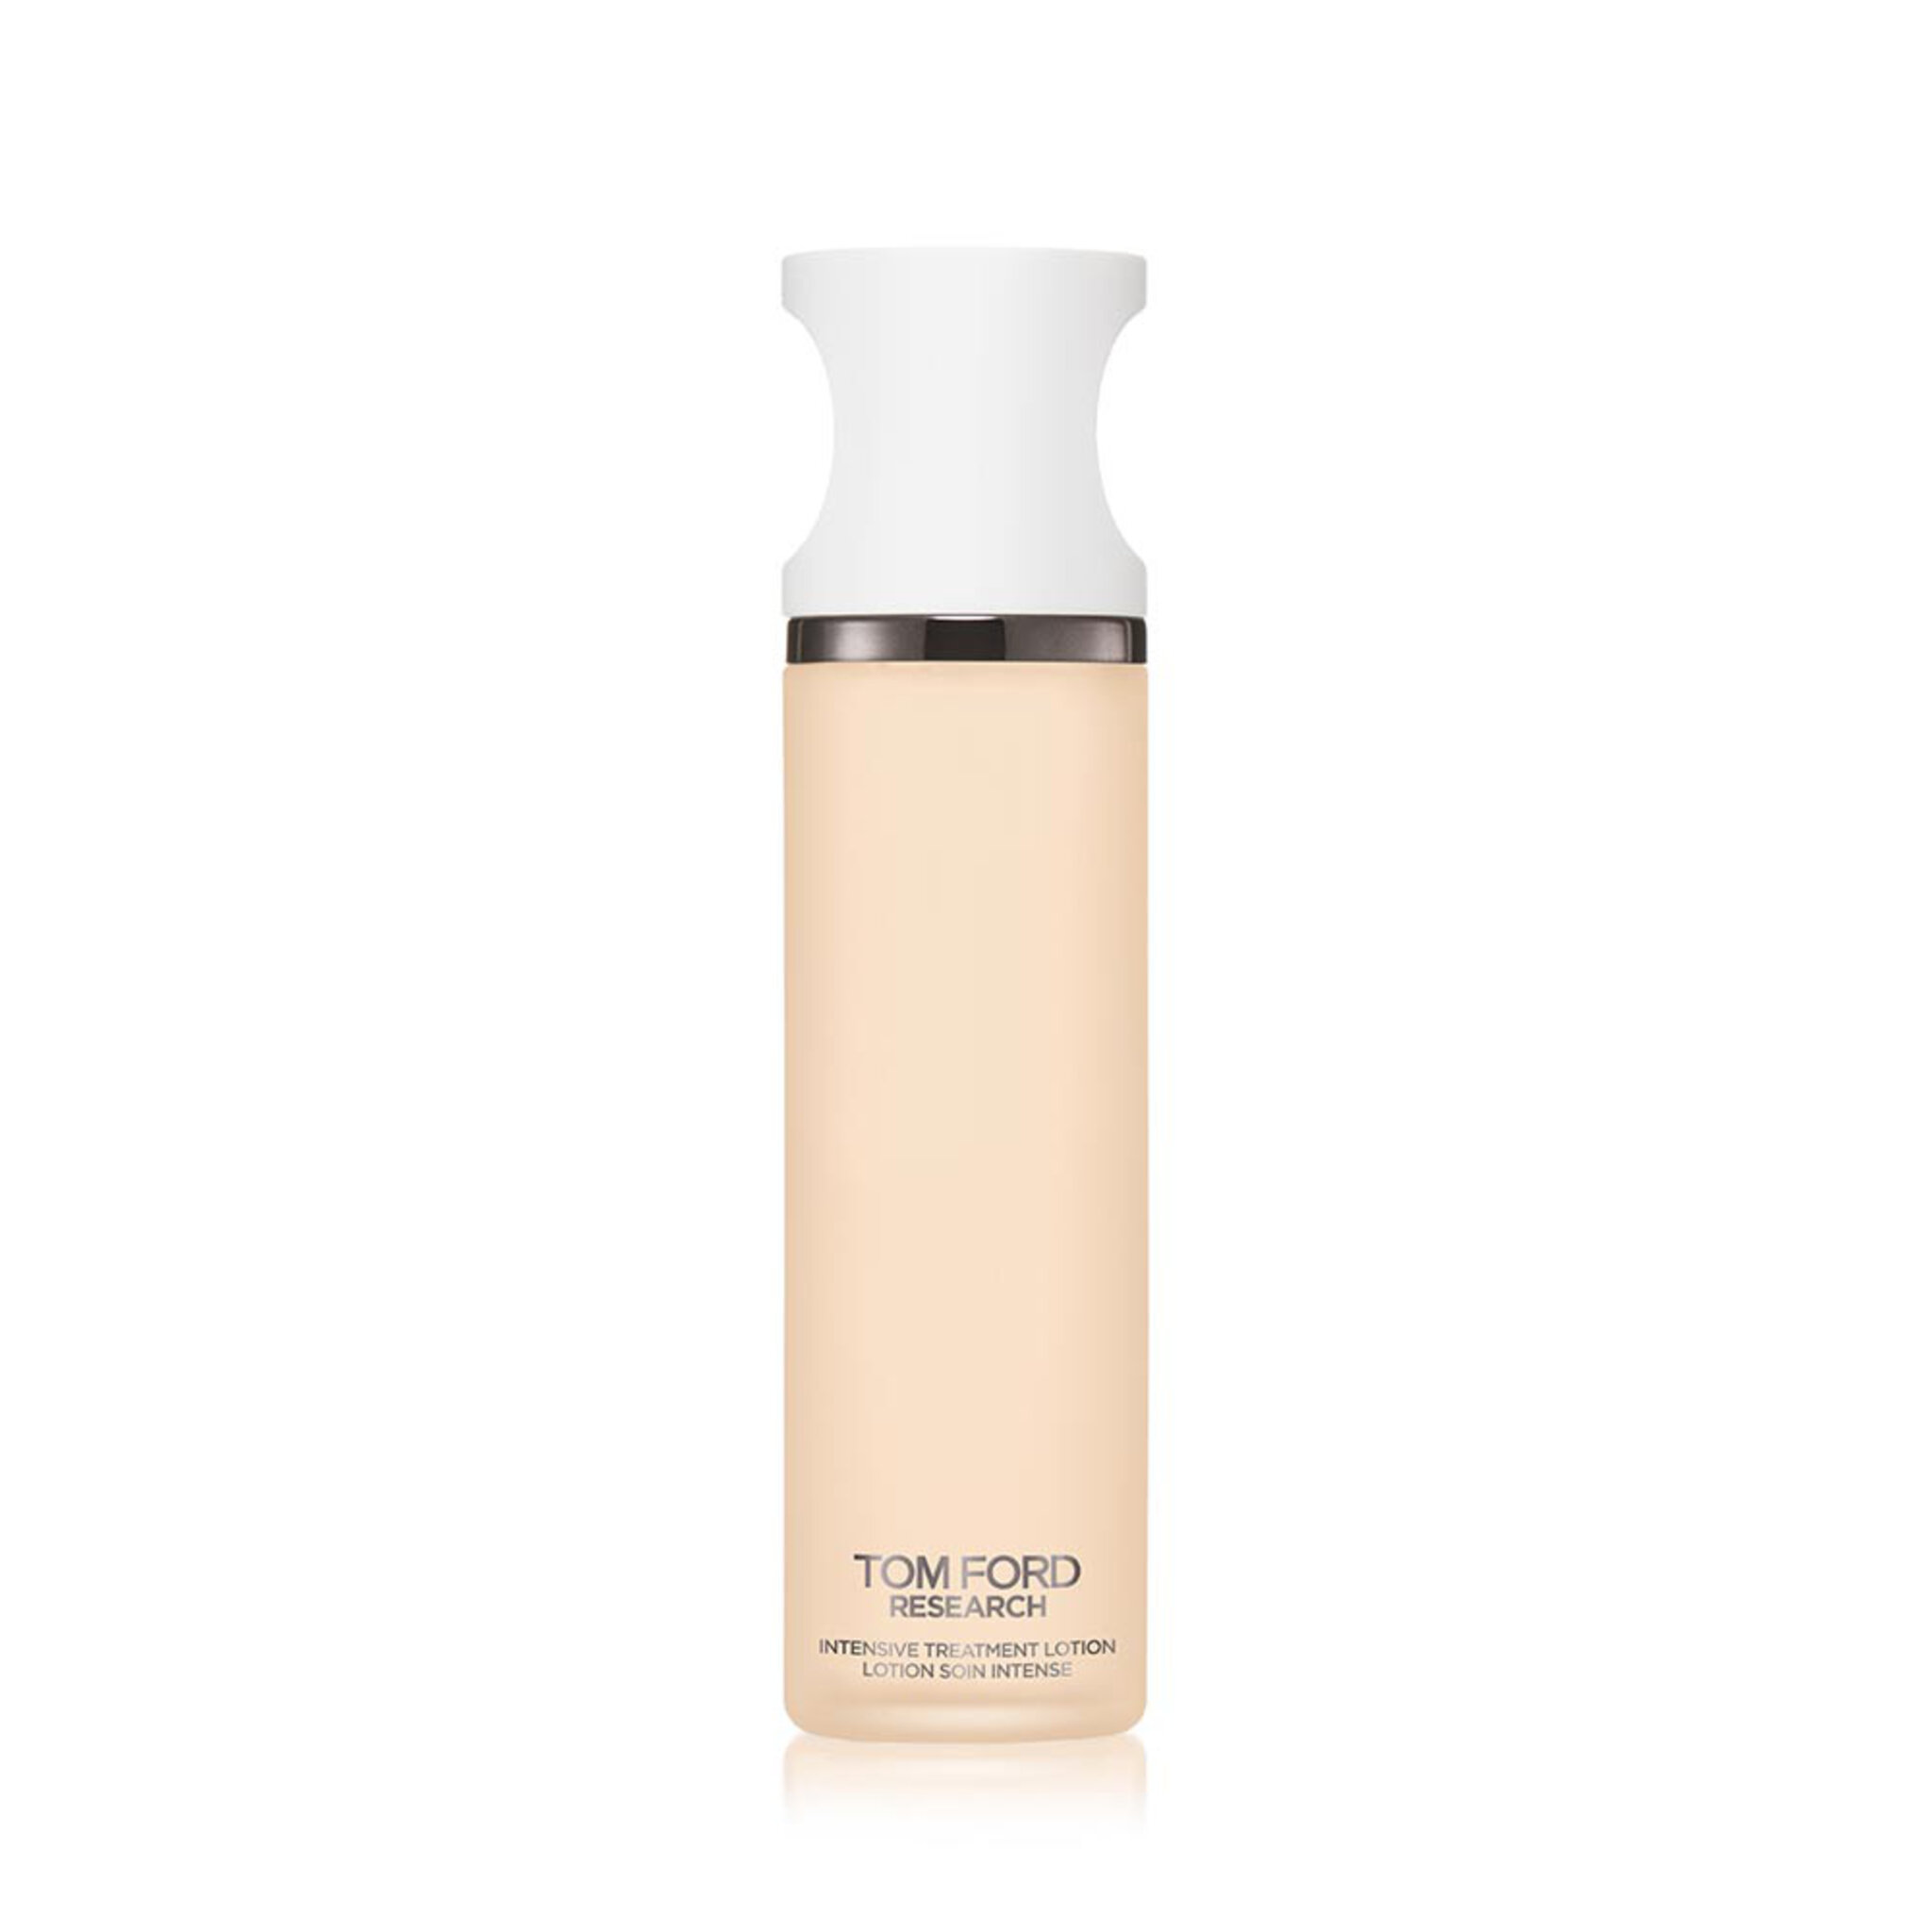 Research Intensive Treatment Lotion, 150 ML